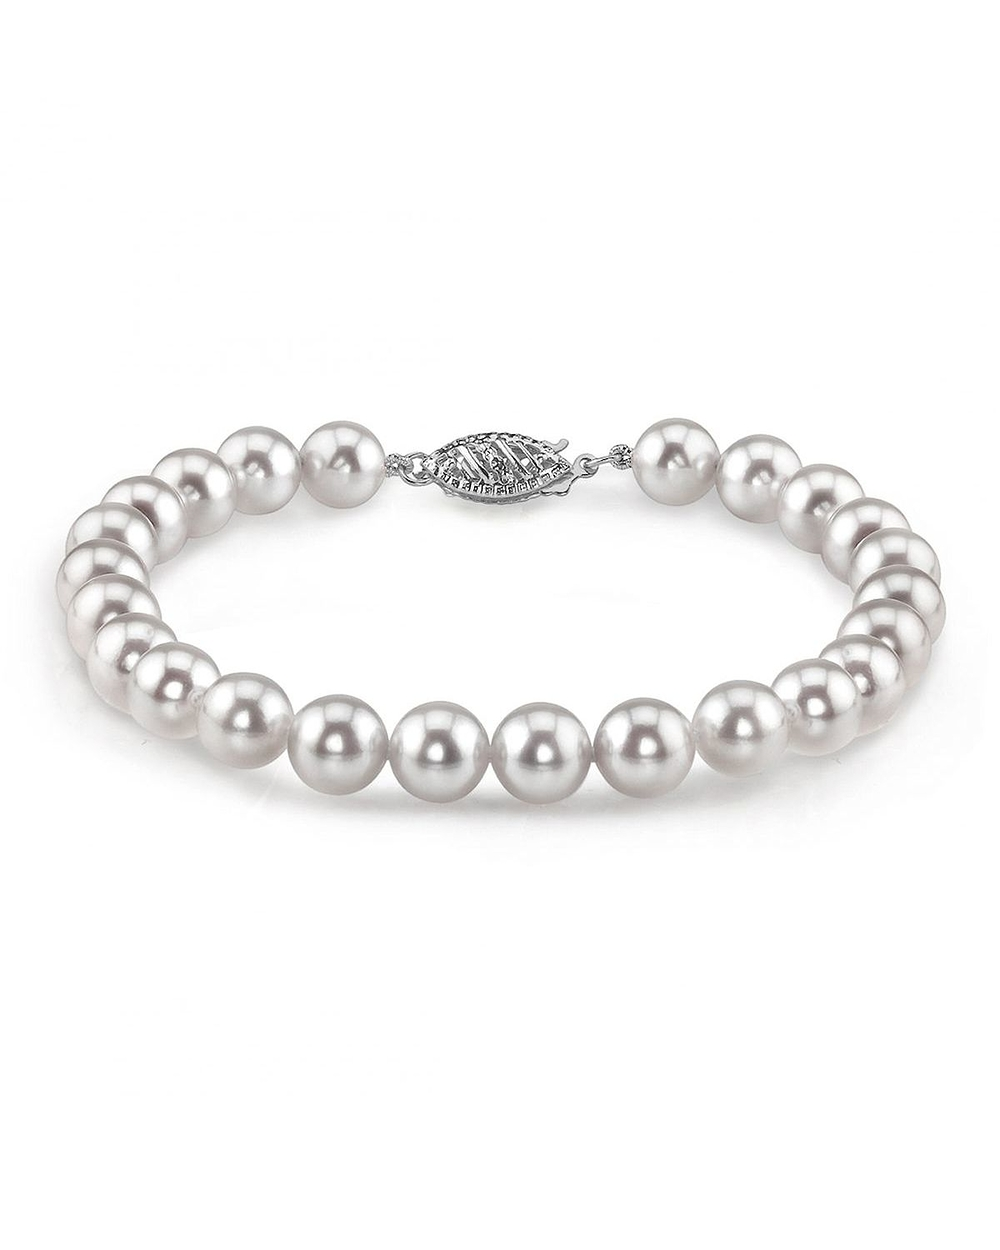 5.5-6.0mm Akoya White Pearl Bracelet - Choose Your Quality